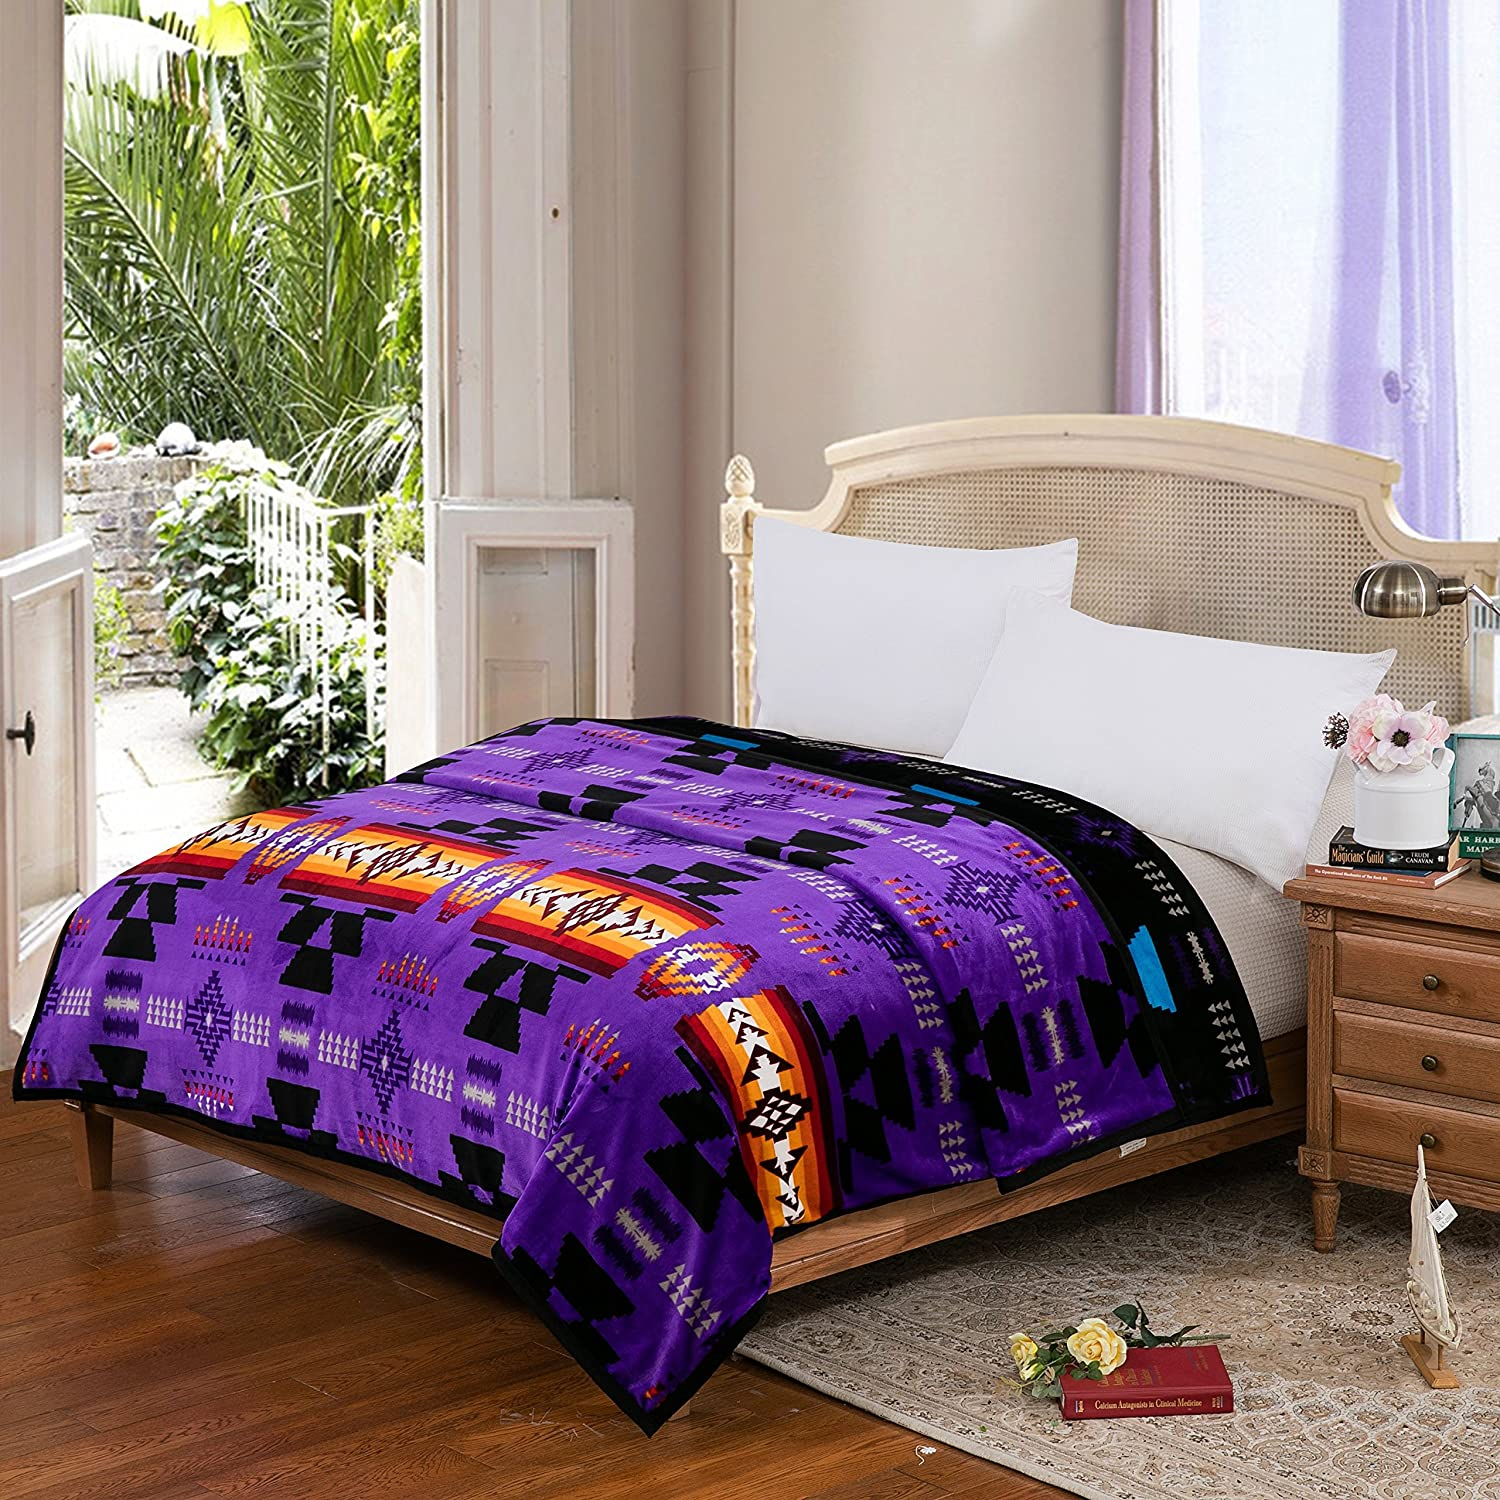 Southwest Design (Navajo Print) Queen Size Reversible Purple   Black